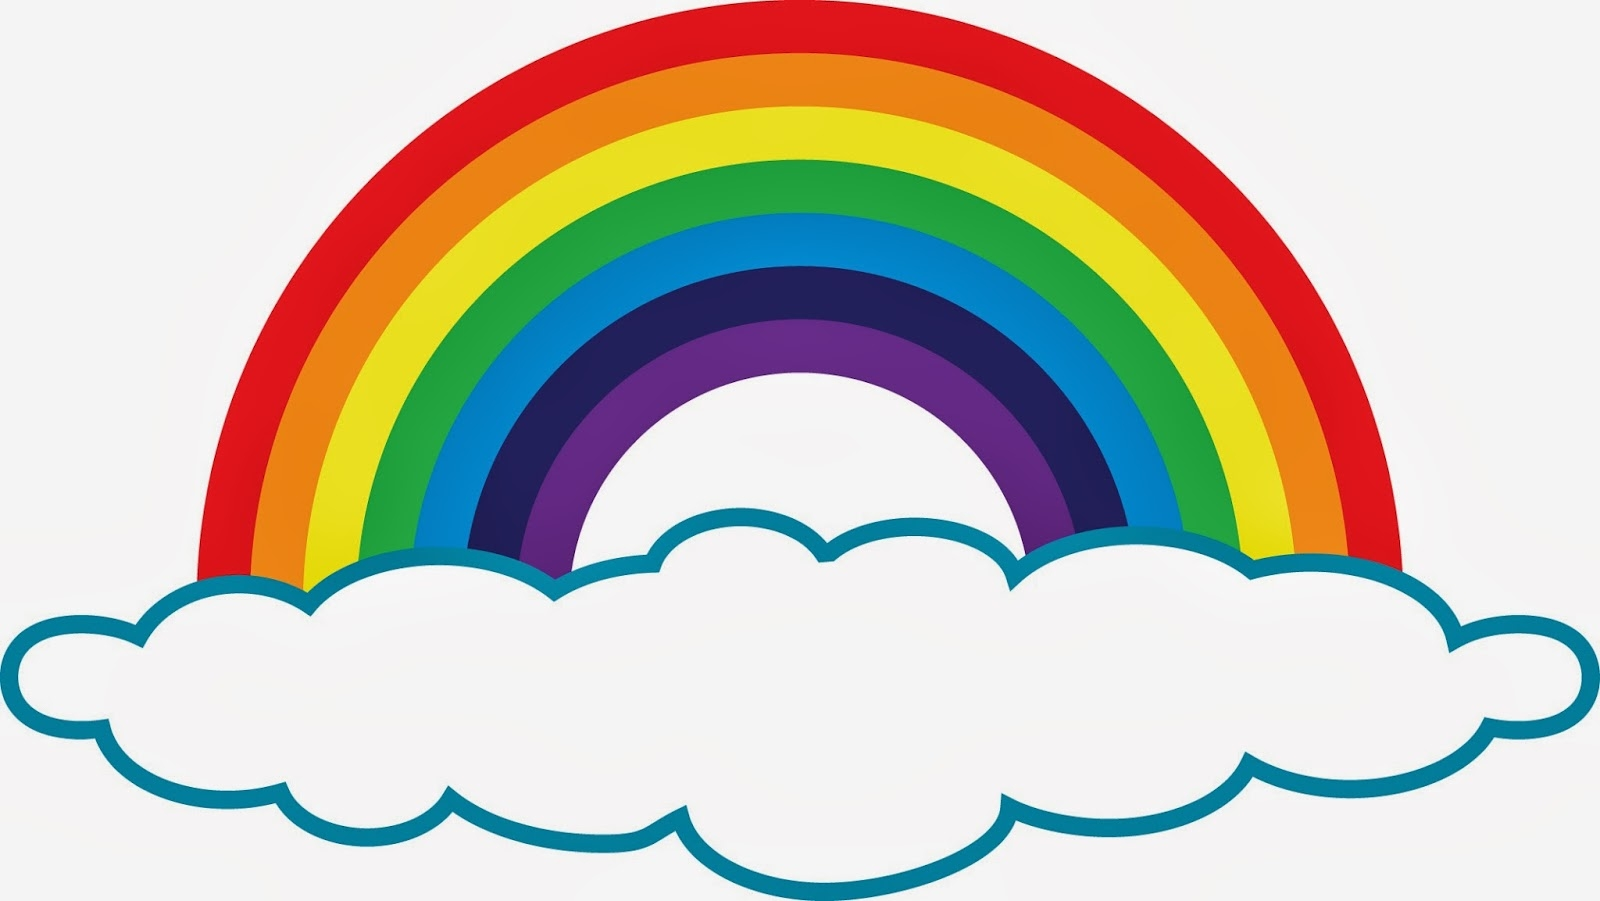 Rainbow Clipart Free Download.